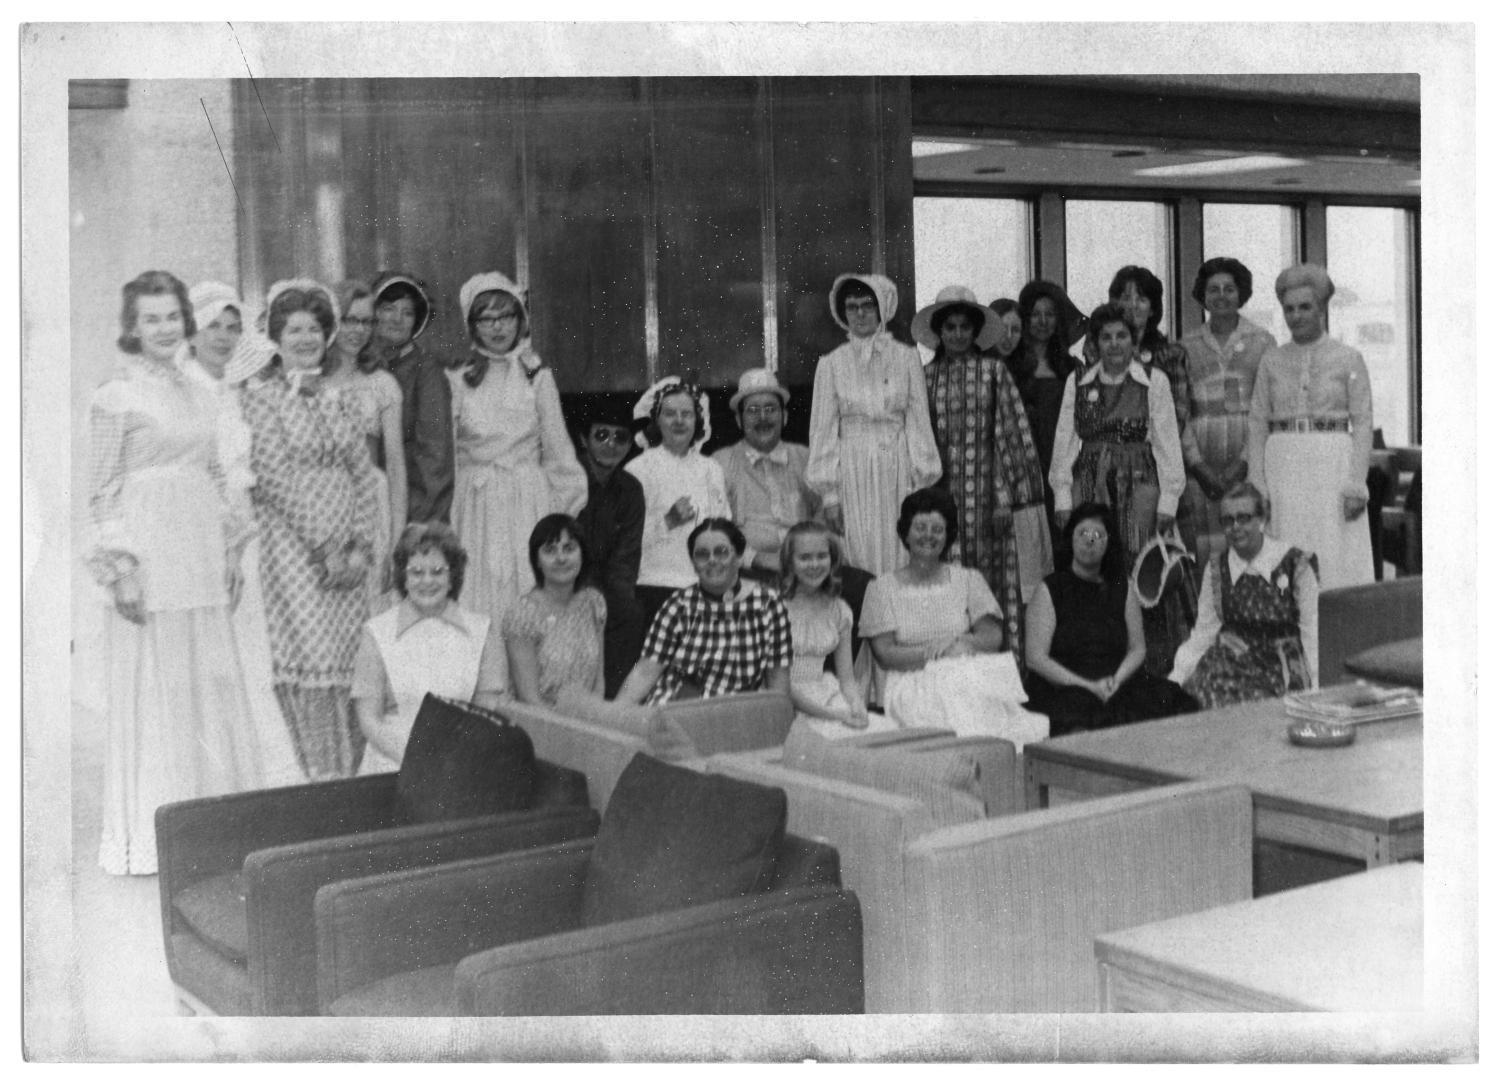 Richardson Public Library - Centennial Costumes, Photograph of twenty-three women and two men posing in front of a copper-clad fireplace at Richardson Public Library. They are wearing costumes in celebration for the centennial of Richardson, Texas. Seven people are identified as Gerrie Mason (left), Bertha (Bird) ONeal (fourth from right), Tony Rampino (back row, center), Louise Frederick (back row, center), Paul Smith (back row, center), Marita Mangan (fourth from left), and Charlie Unk (far right). In the foreground, there is a group of chairs.,